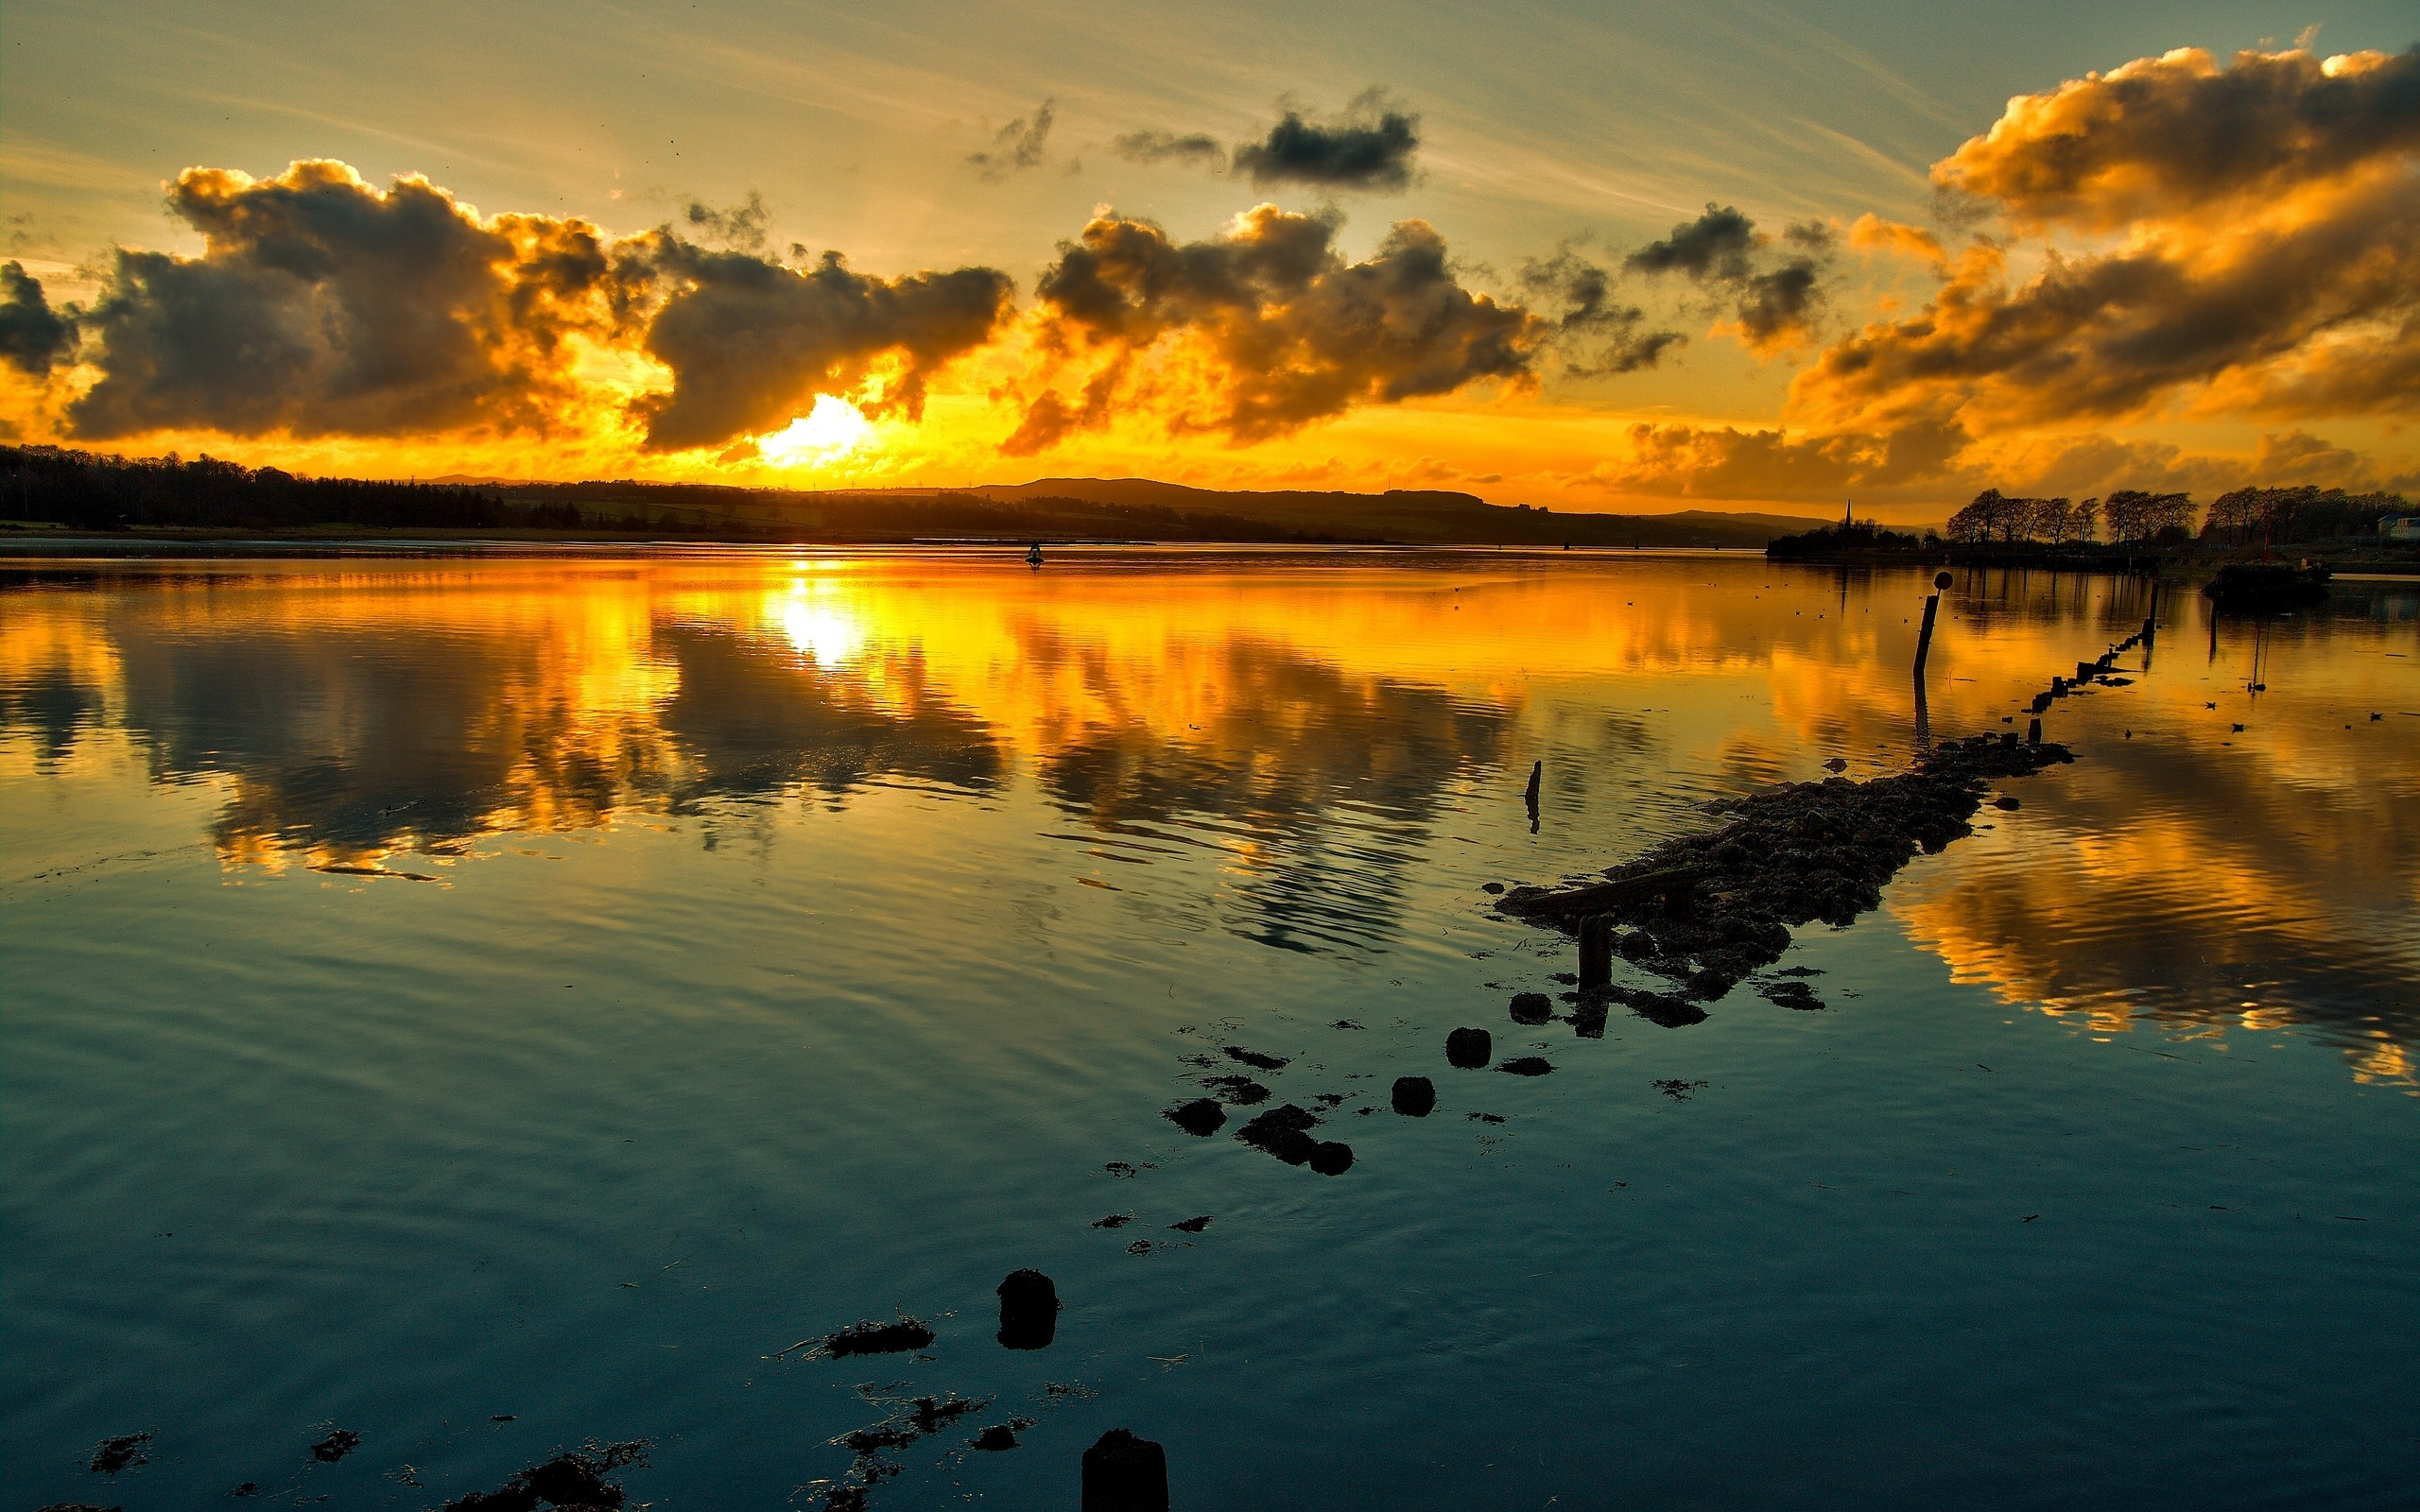 pc background wallpaper,sky,body of water,nature,reflection,sunset